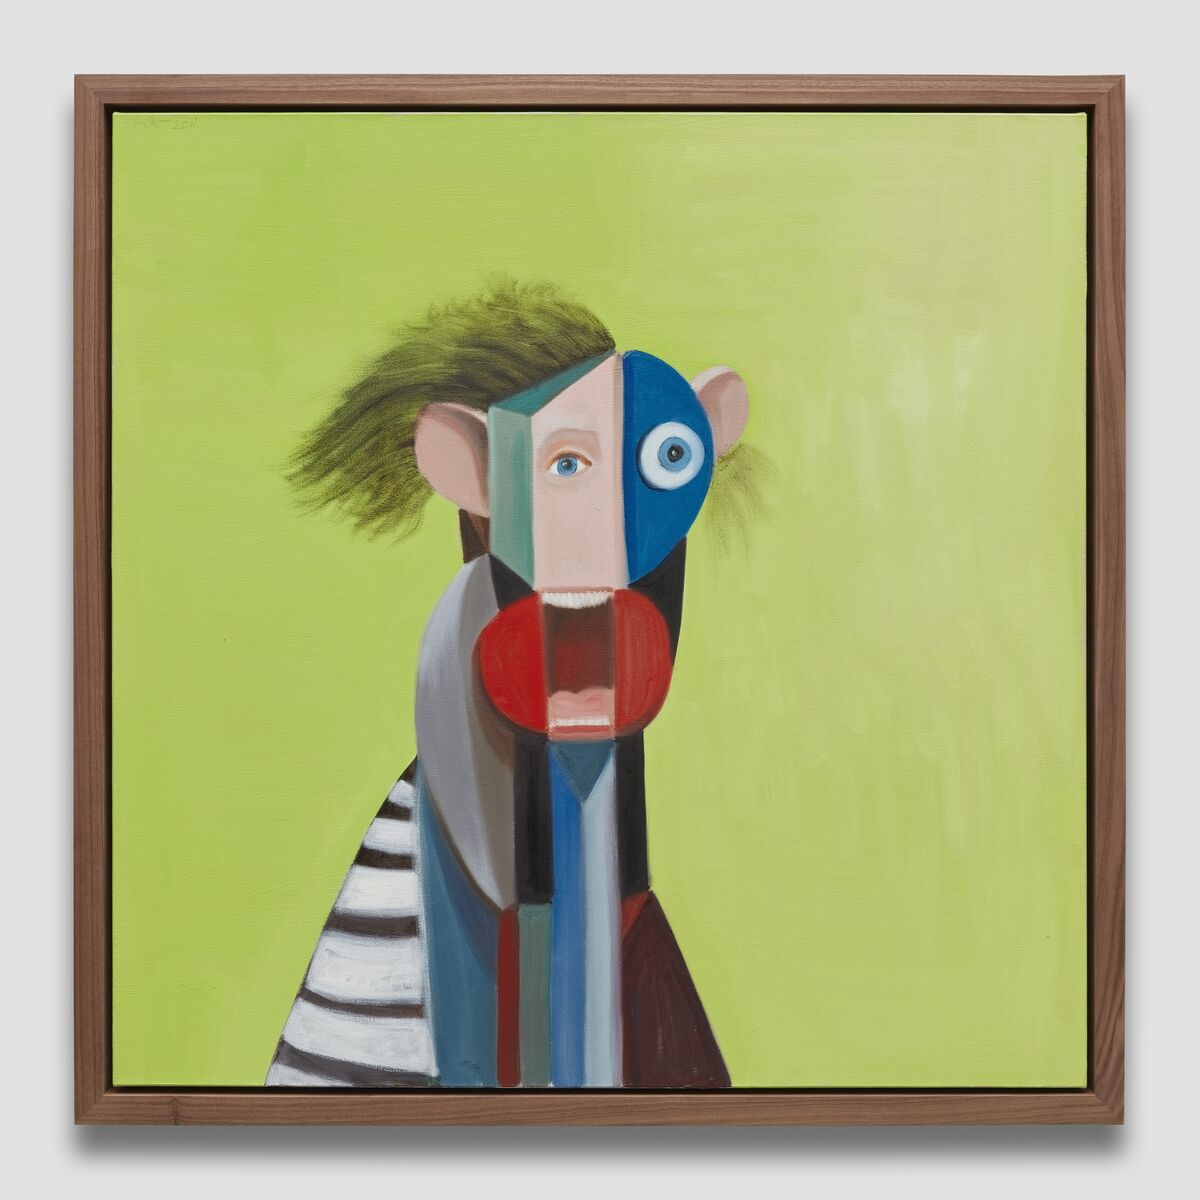 George Condo, Boy in Striped Shirt, 2011. © George Condo. Photo by Matt Kroening. Courtesy of the Artist and Almine Rech.